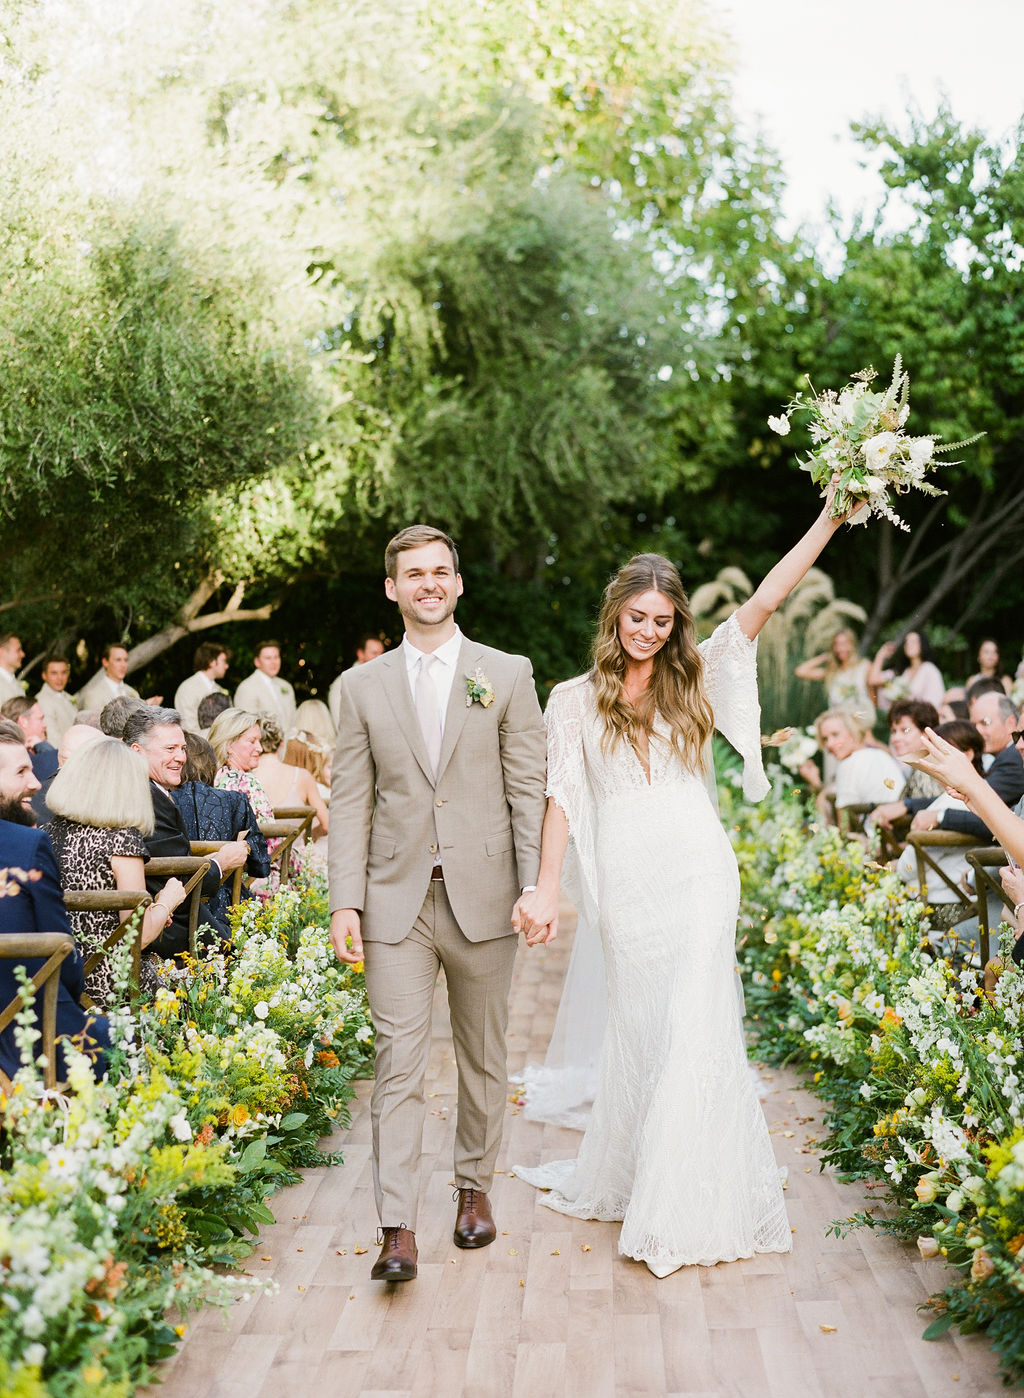 bride and groom holding hands recessing down aisle lined with flowers